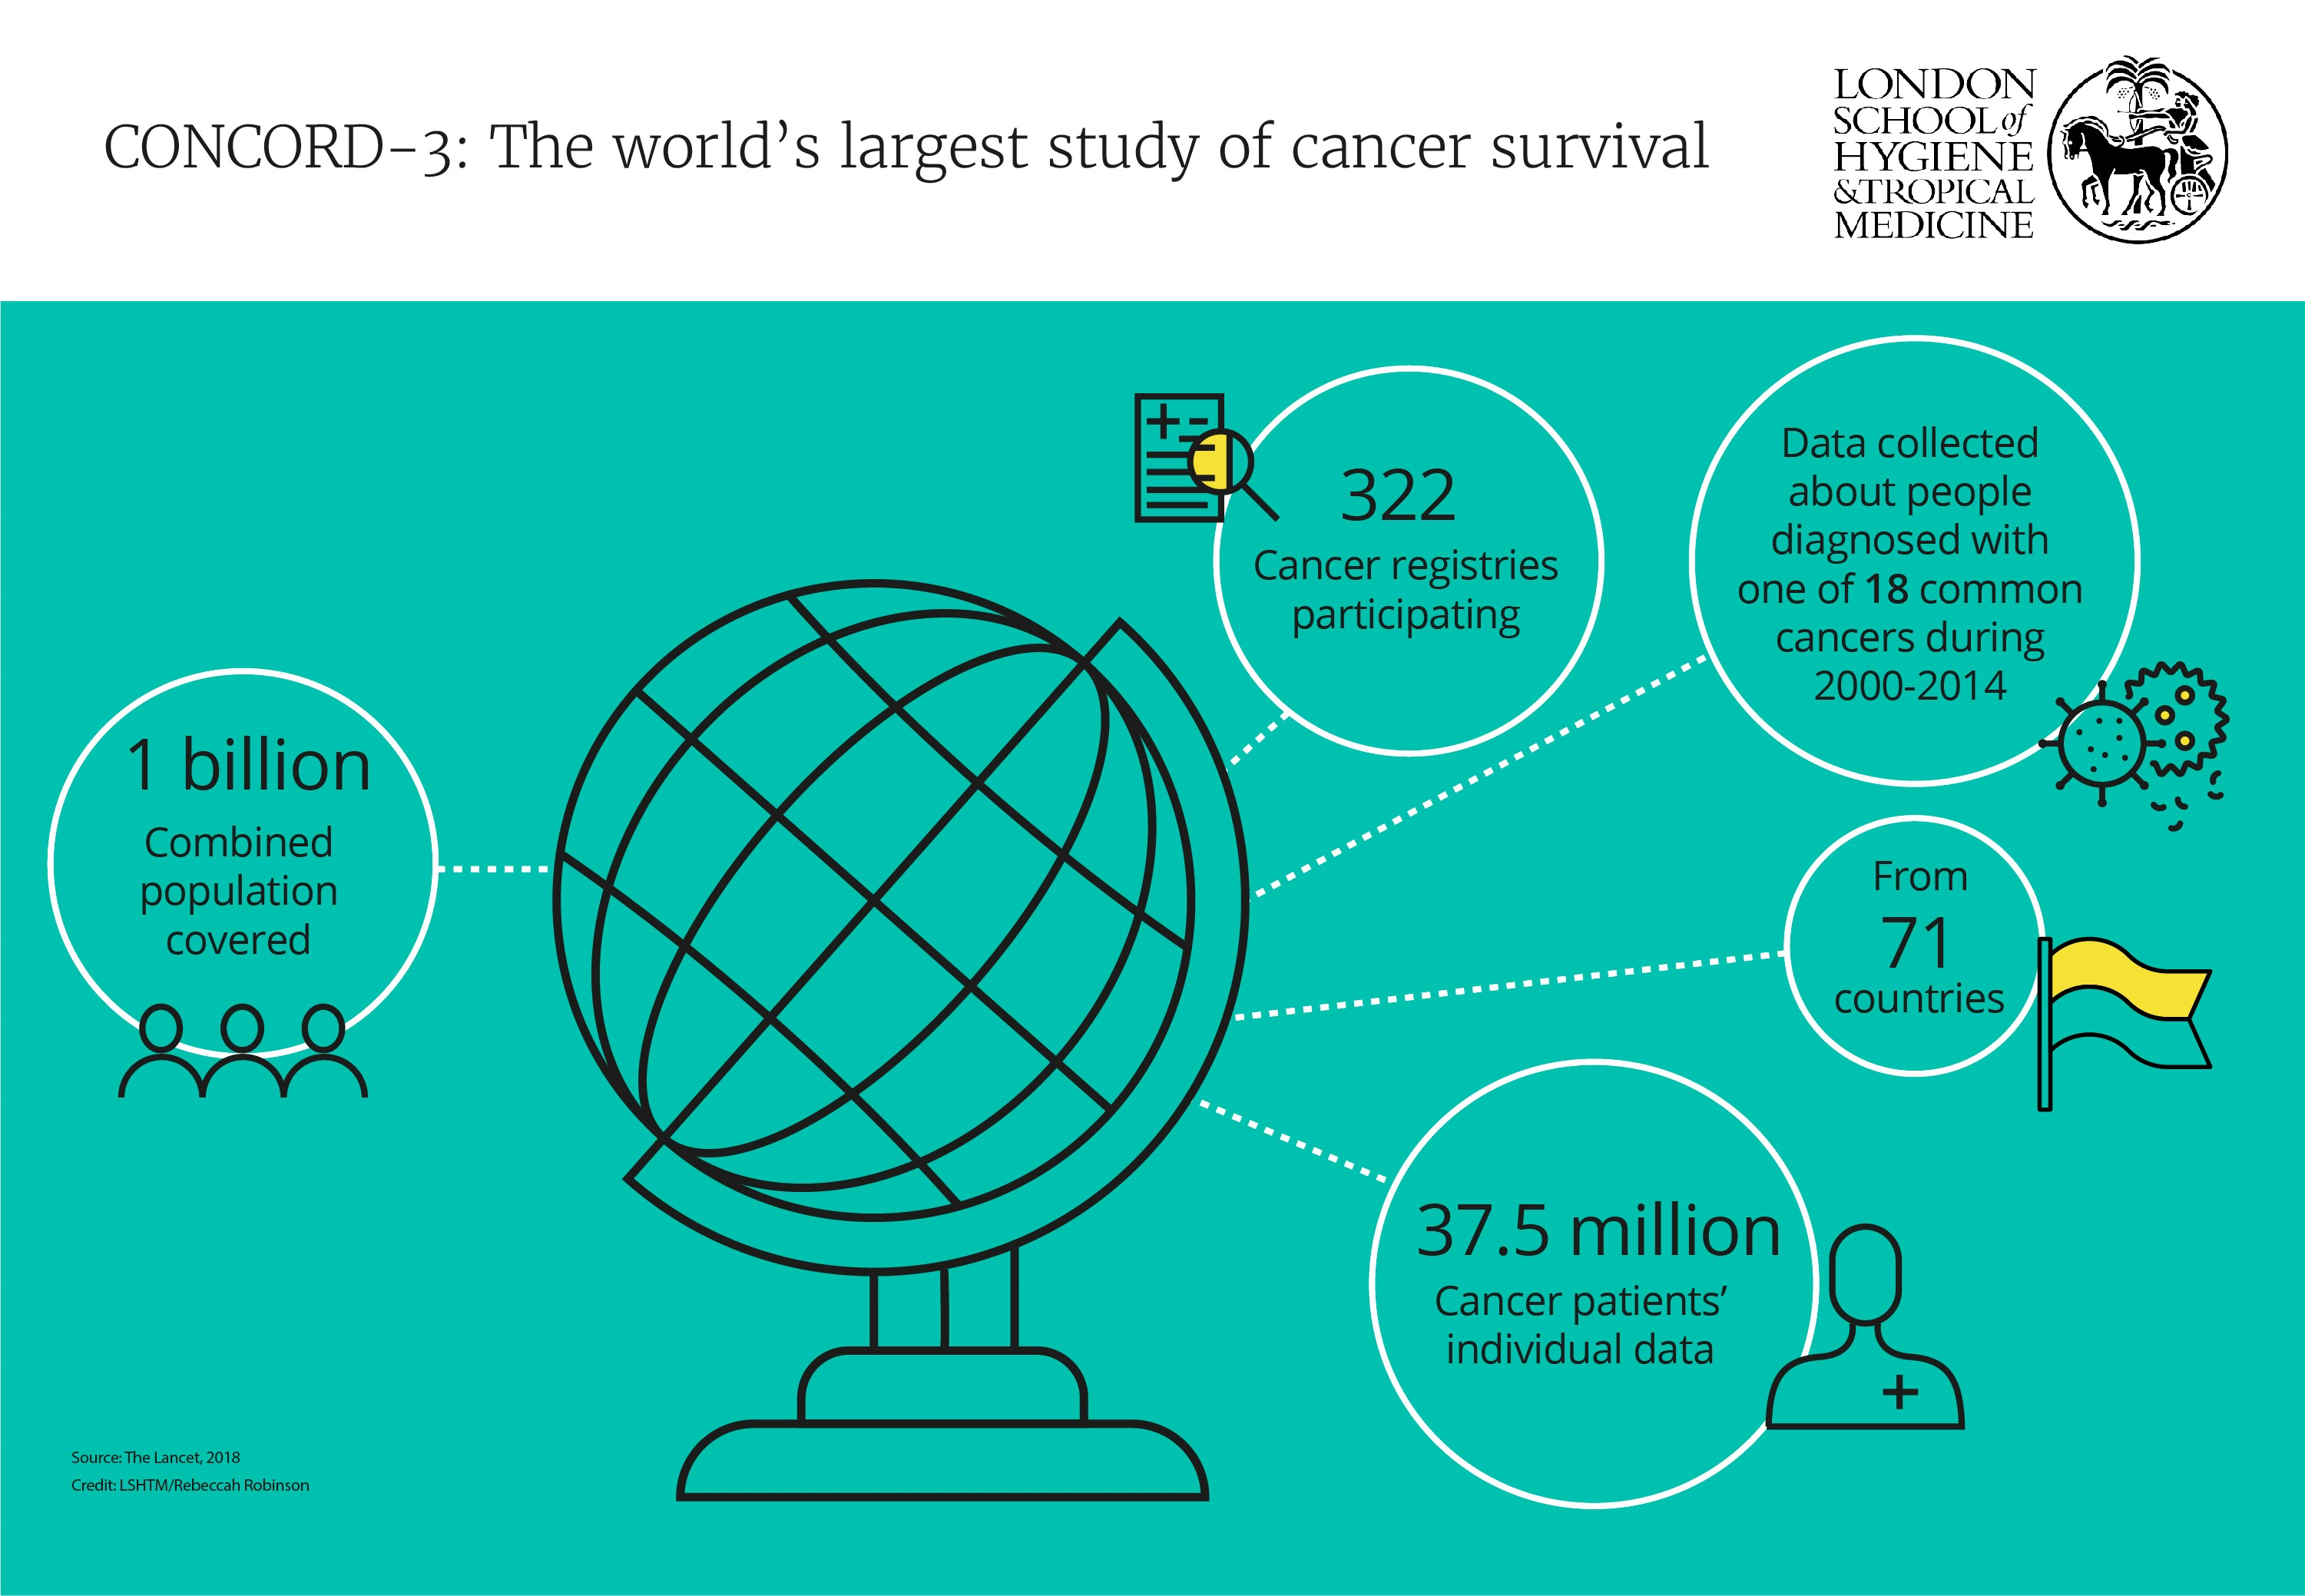 CONCORD-3: the world's largest study of cancer survival